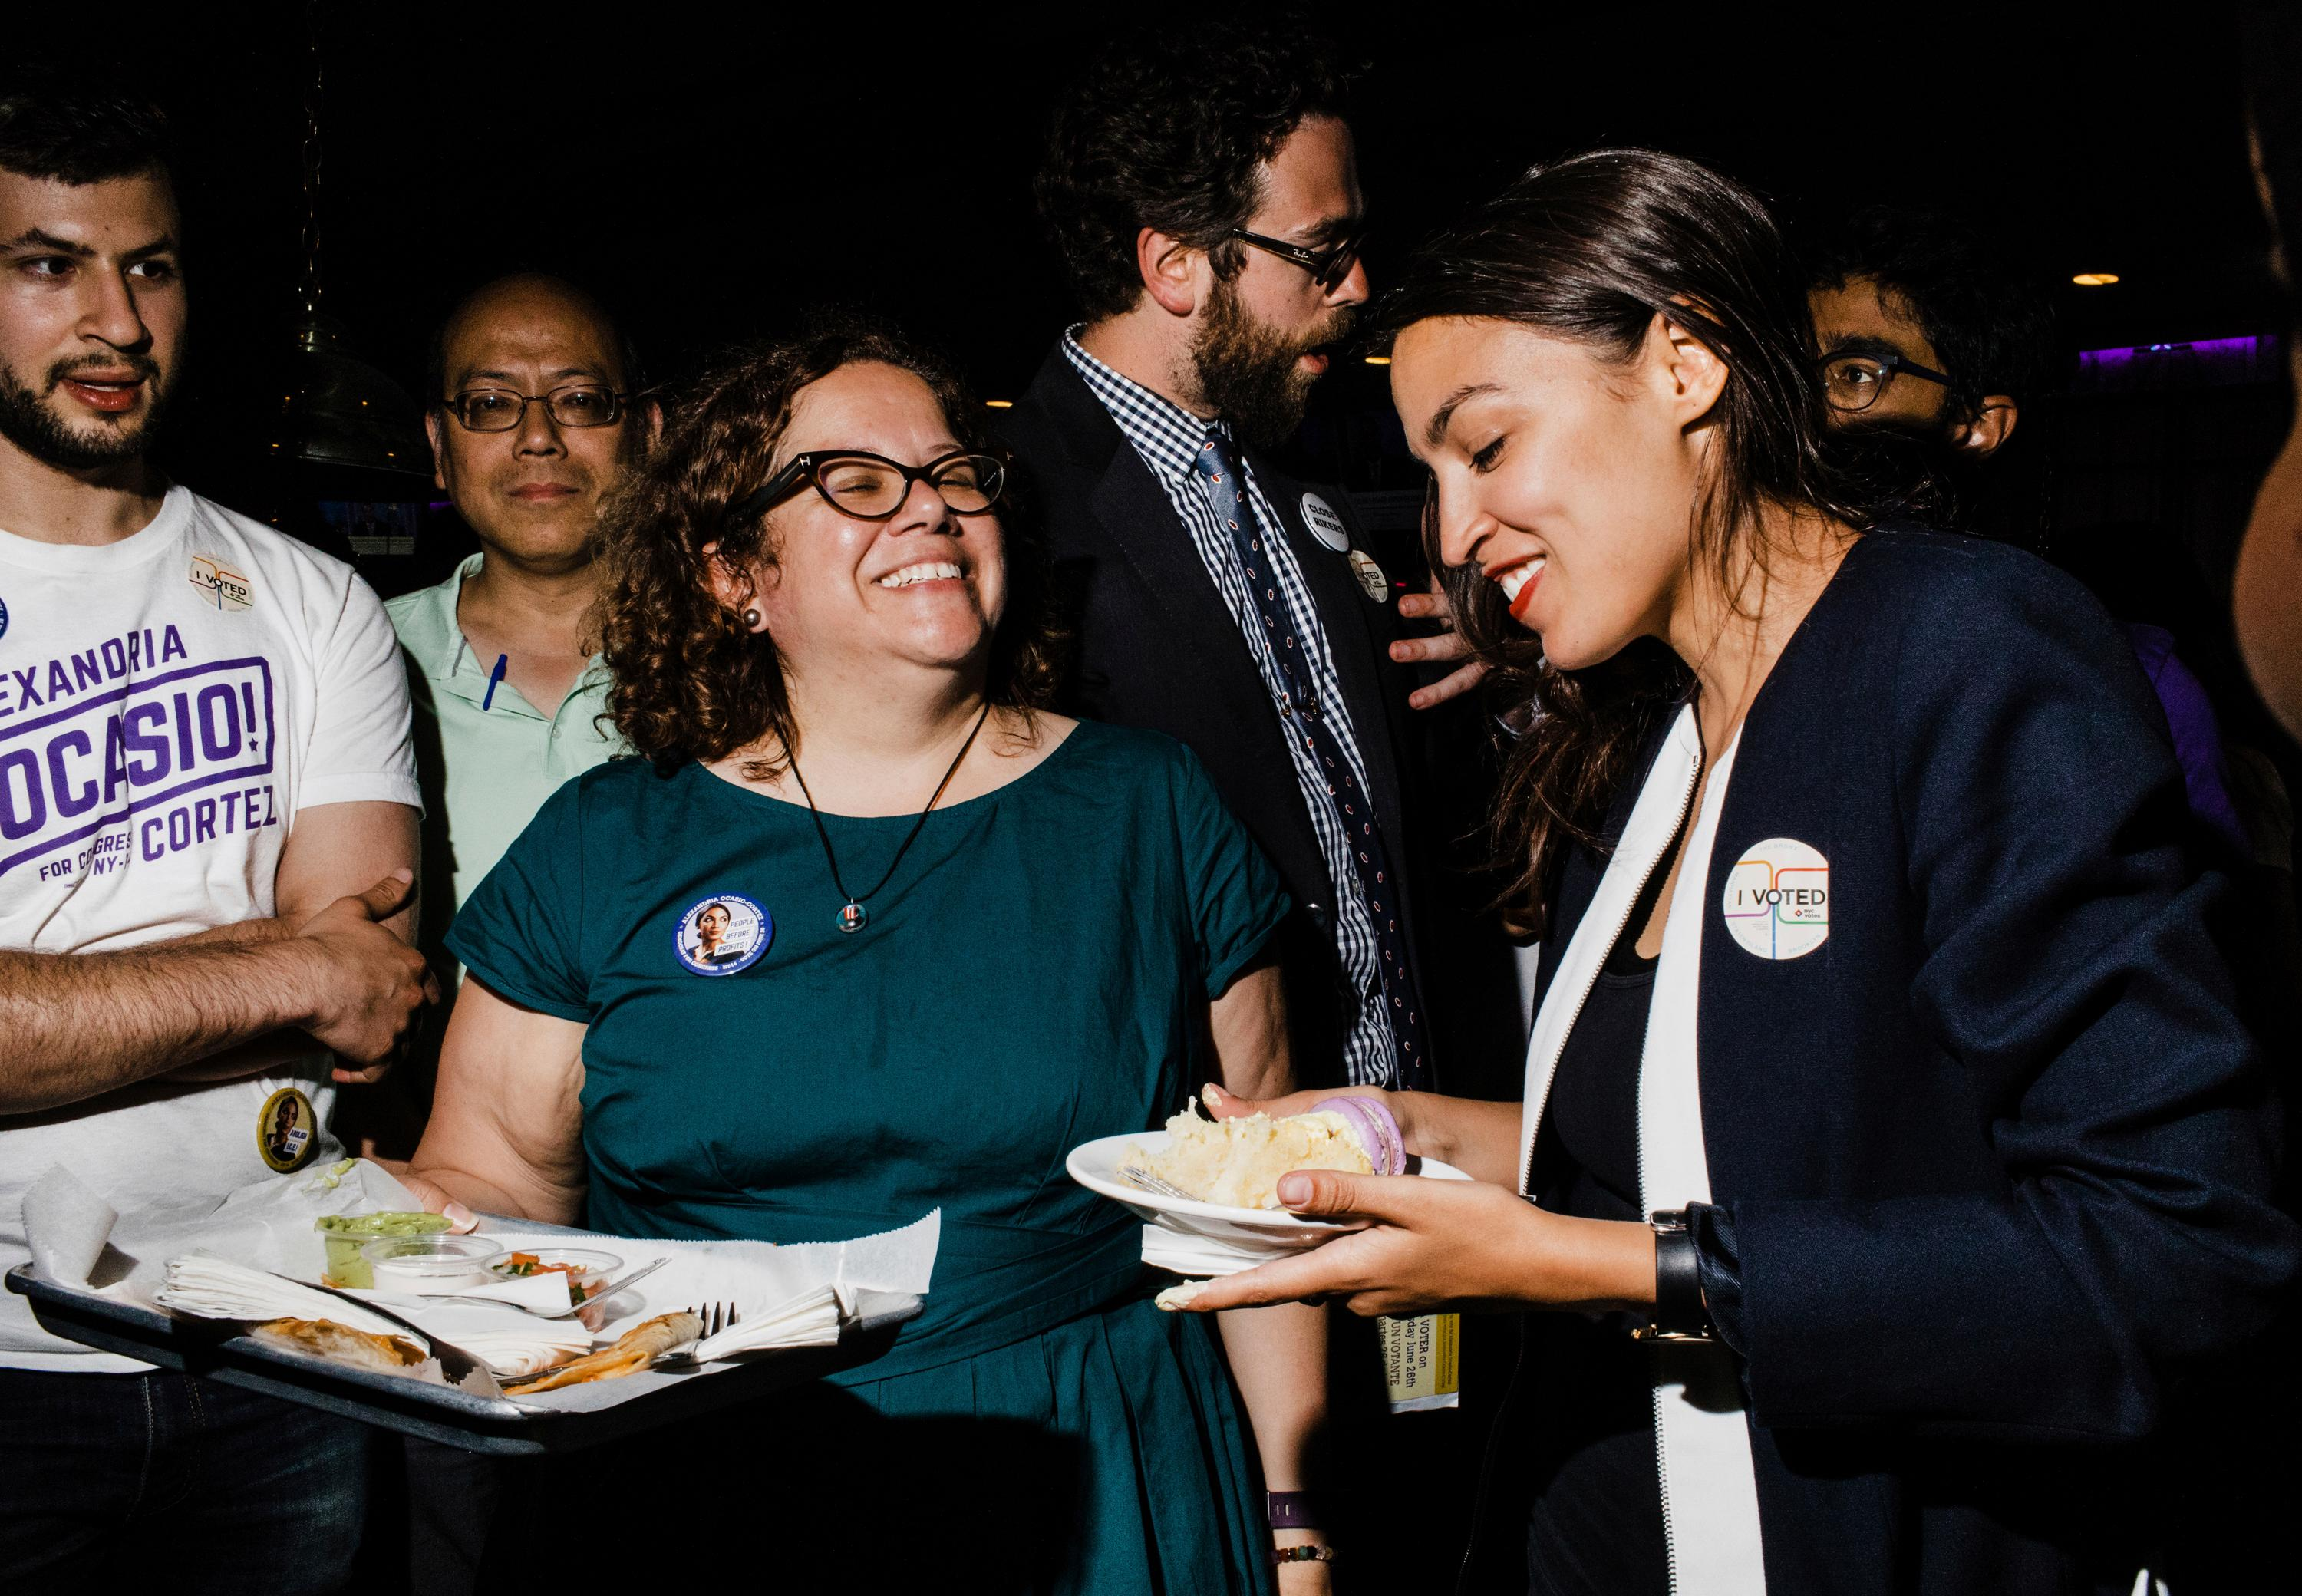 In this June 27, 2018 photo provided by Ocasio2018, Alexandria Ocasio-Cortez, right, 28, celebrates her Democratic congressional primary victory over 10-term incumbent Joe Crowley with campaign manager Virginia Ramos Rios, center left, and campaign staffer Daniel Bonthius, fourth from left, during an election night party at a pool hall in the Bronx borough of New York. Ramos Rios and Bonthius were part of a eclectic team that came together to help their candidate defeat an incumbent who spent  $3.4 million on his campaign. (Ocasio2018/Corey Torpie via AP)